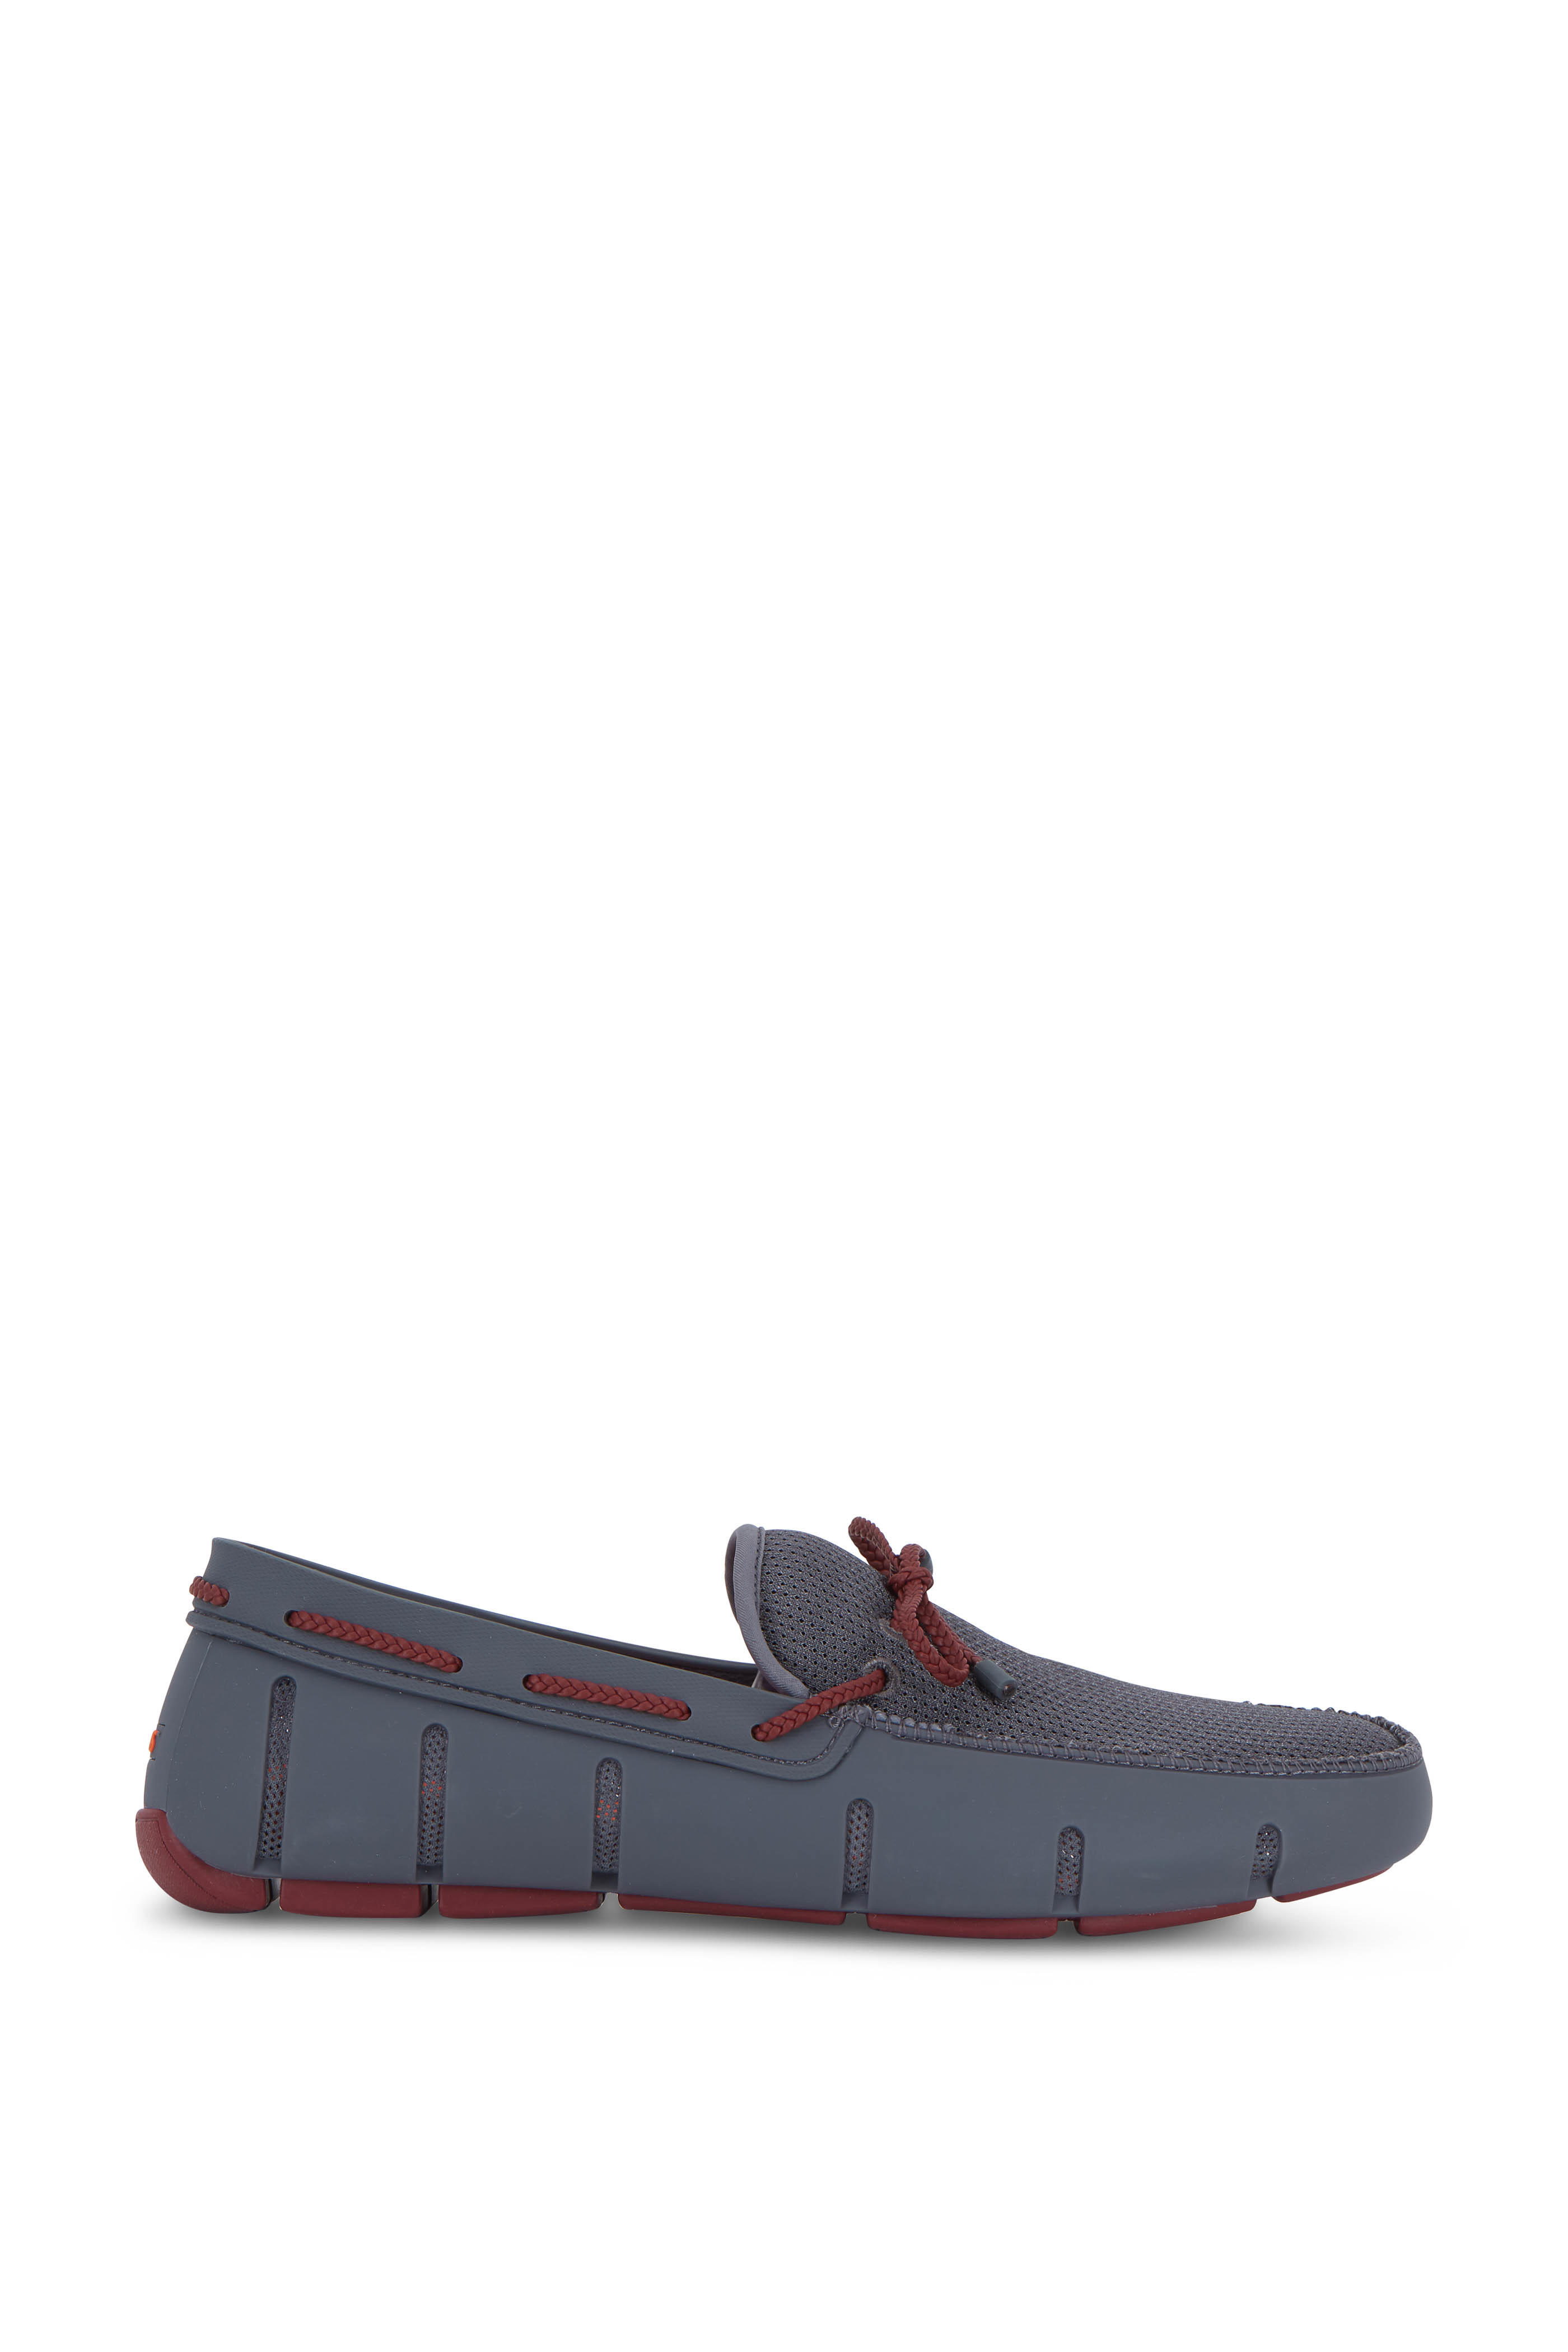 b91d000a2d1d1 Swims - Gray & Cabernet Braided Lux Driver | Mitchell Stores